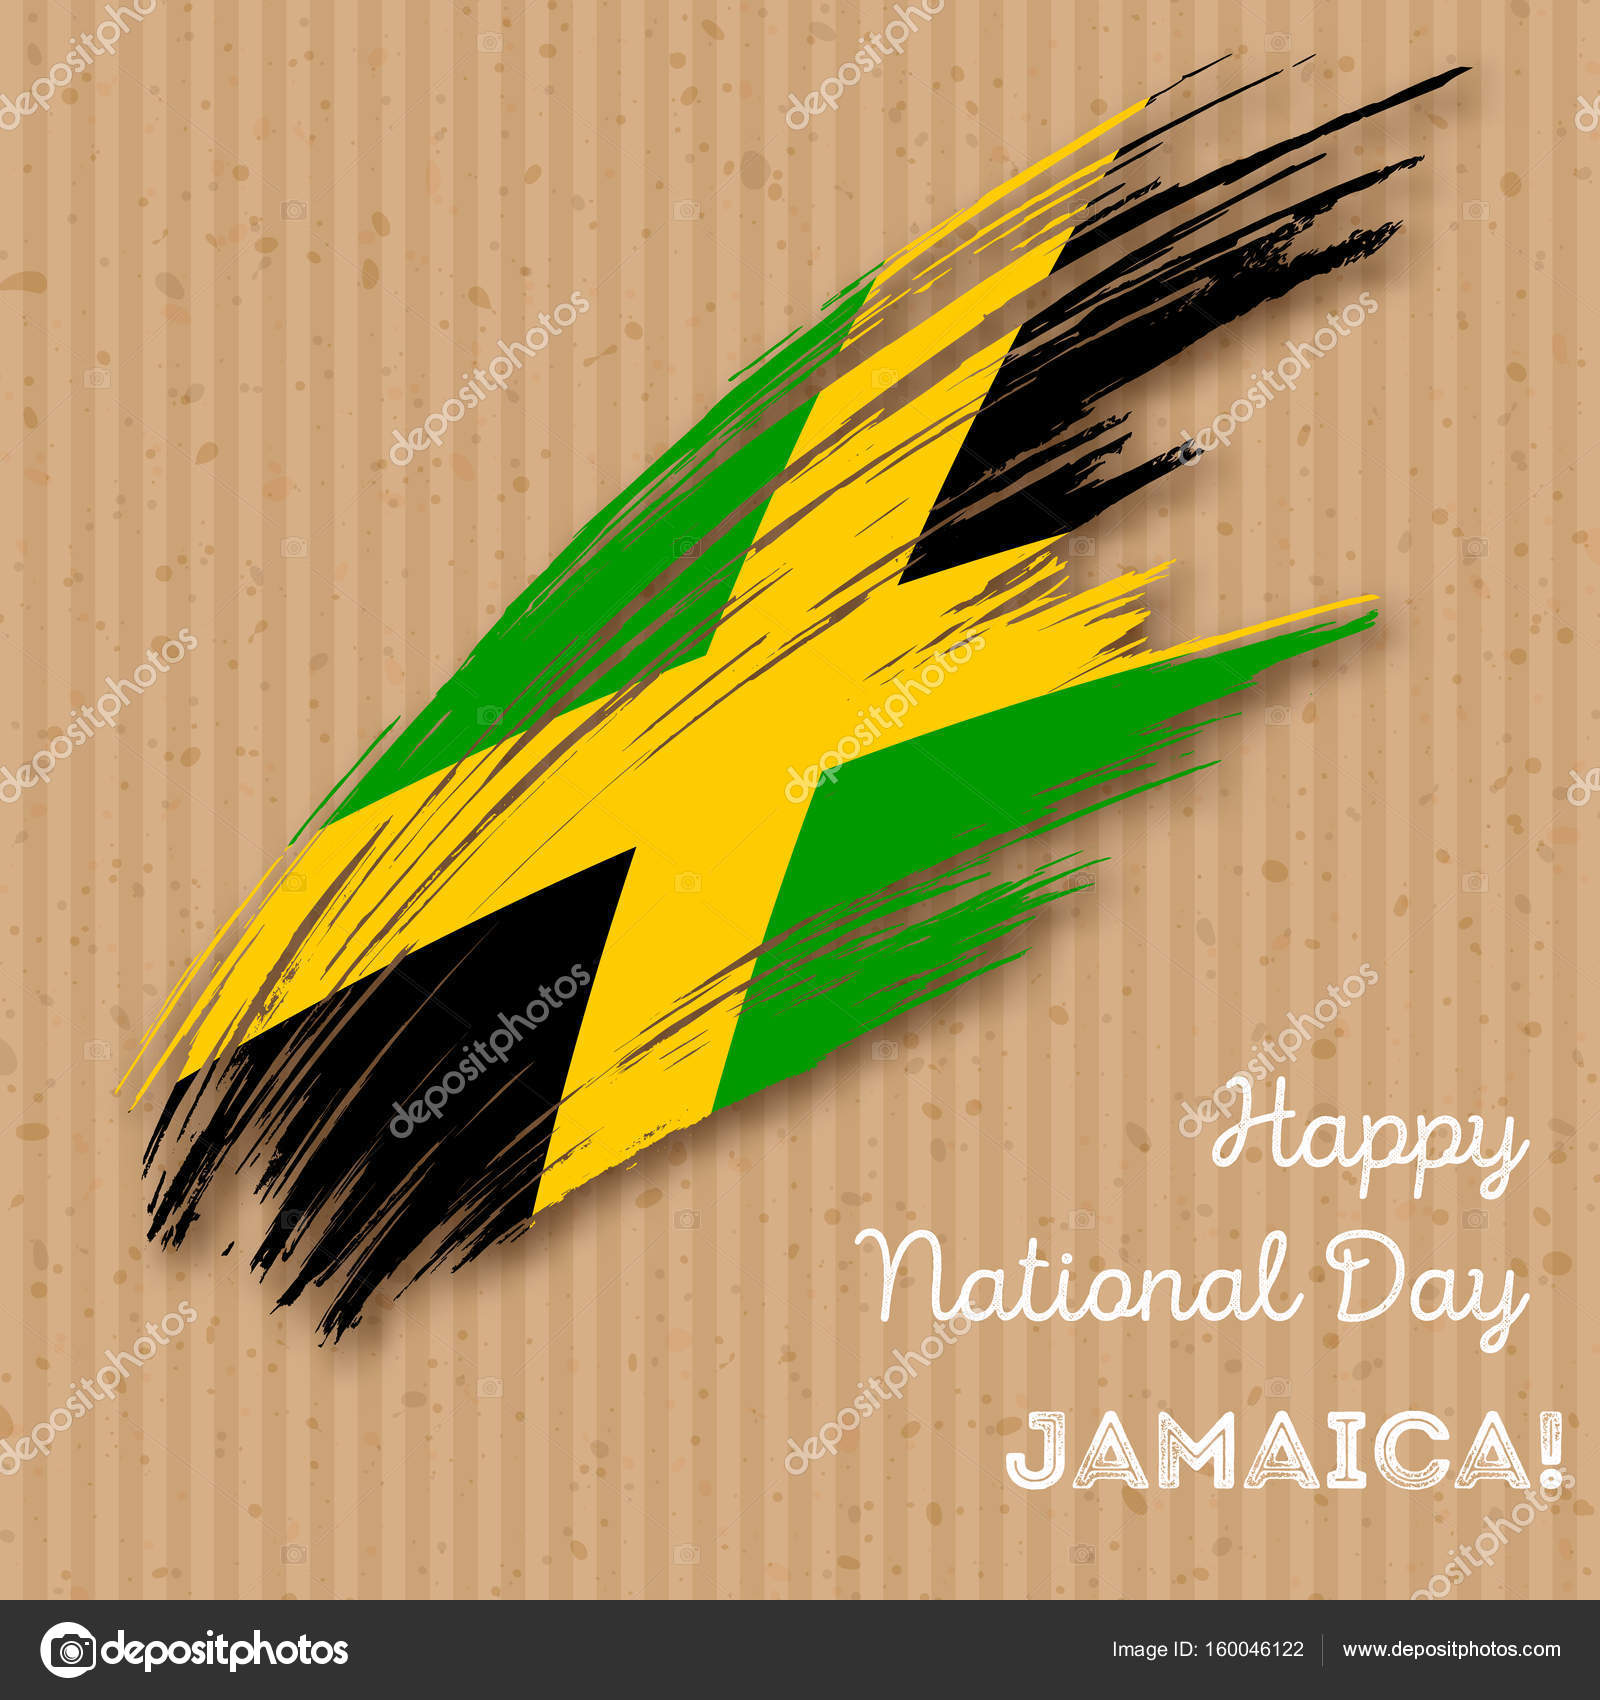 Jamaica Independence Day Patriotic Design Expressive Brush Stroke - Jamaica independence day